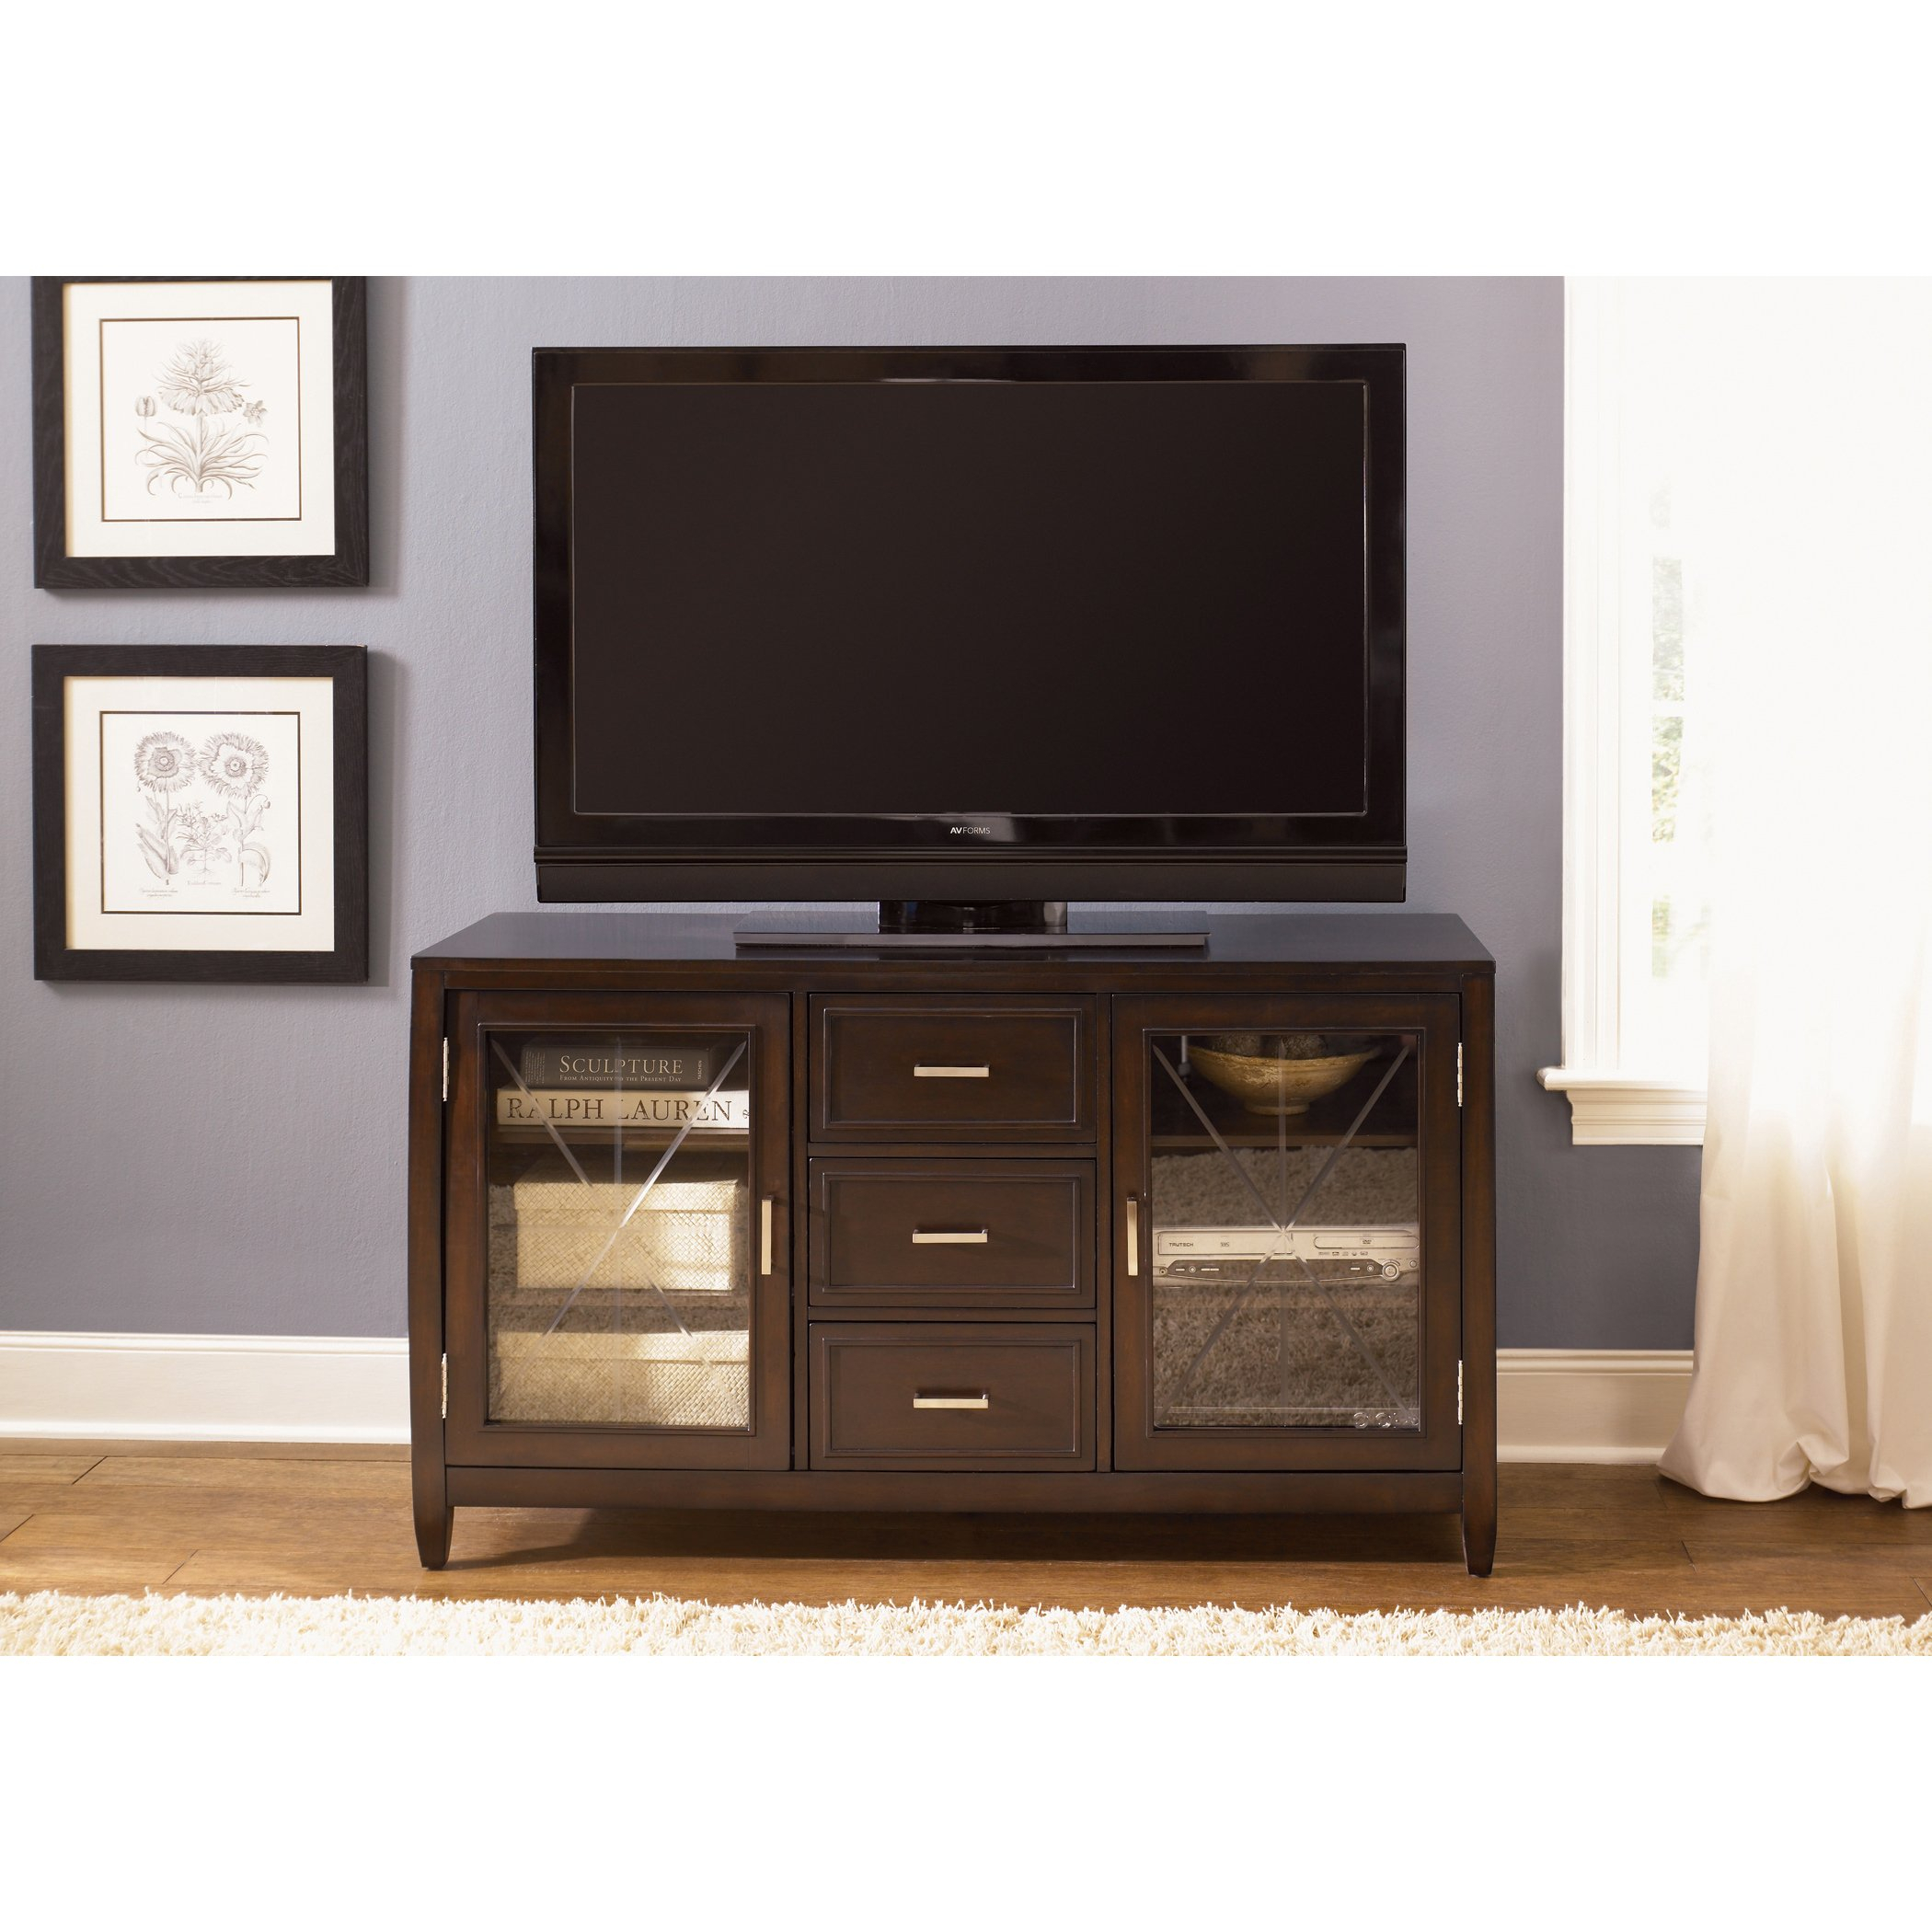 Shop Liberty Caroline 60 Inch Entertainment Tv Stand – On Sale Inside Laurent 60 Inch Tv Stands (View 7 of 30)